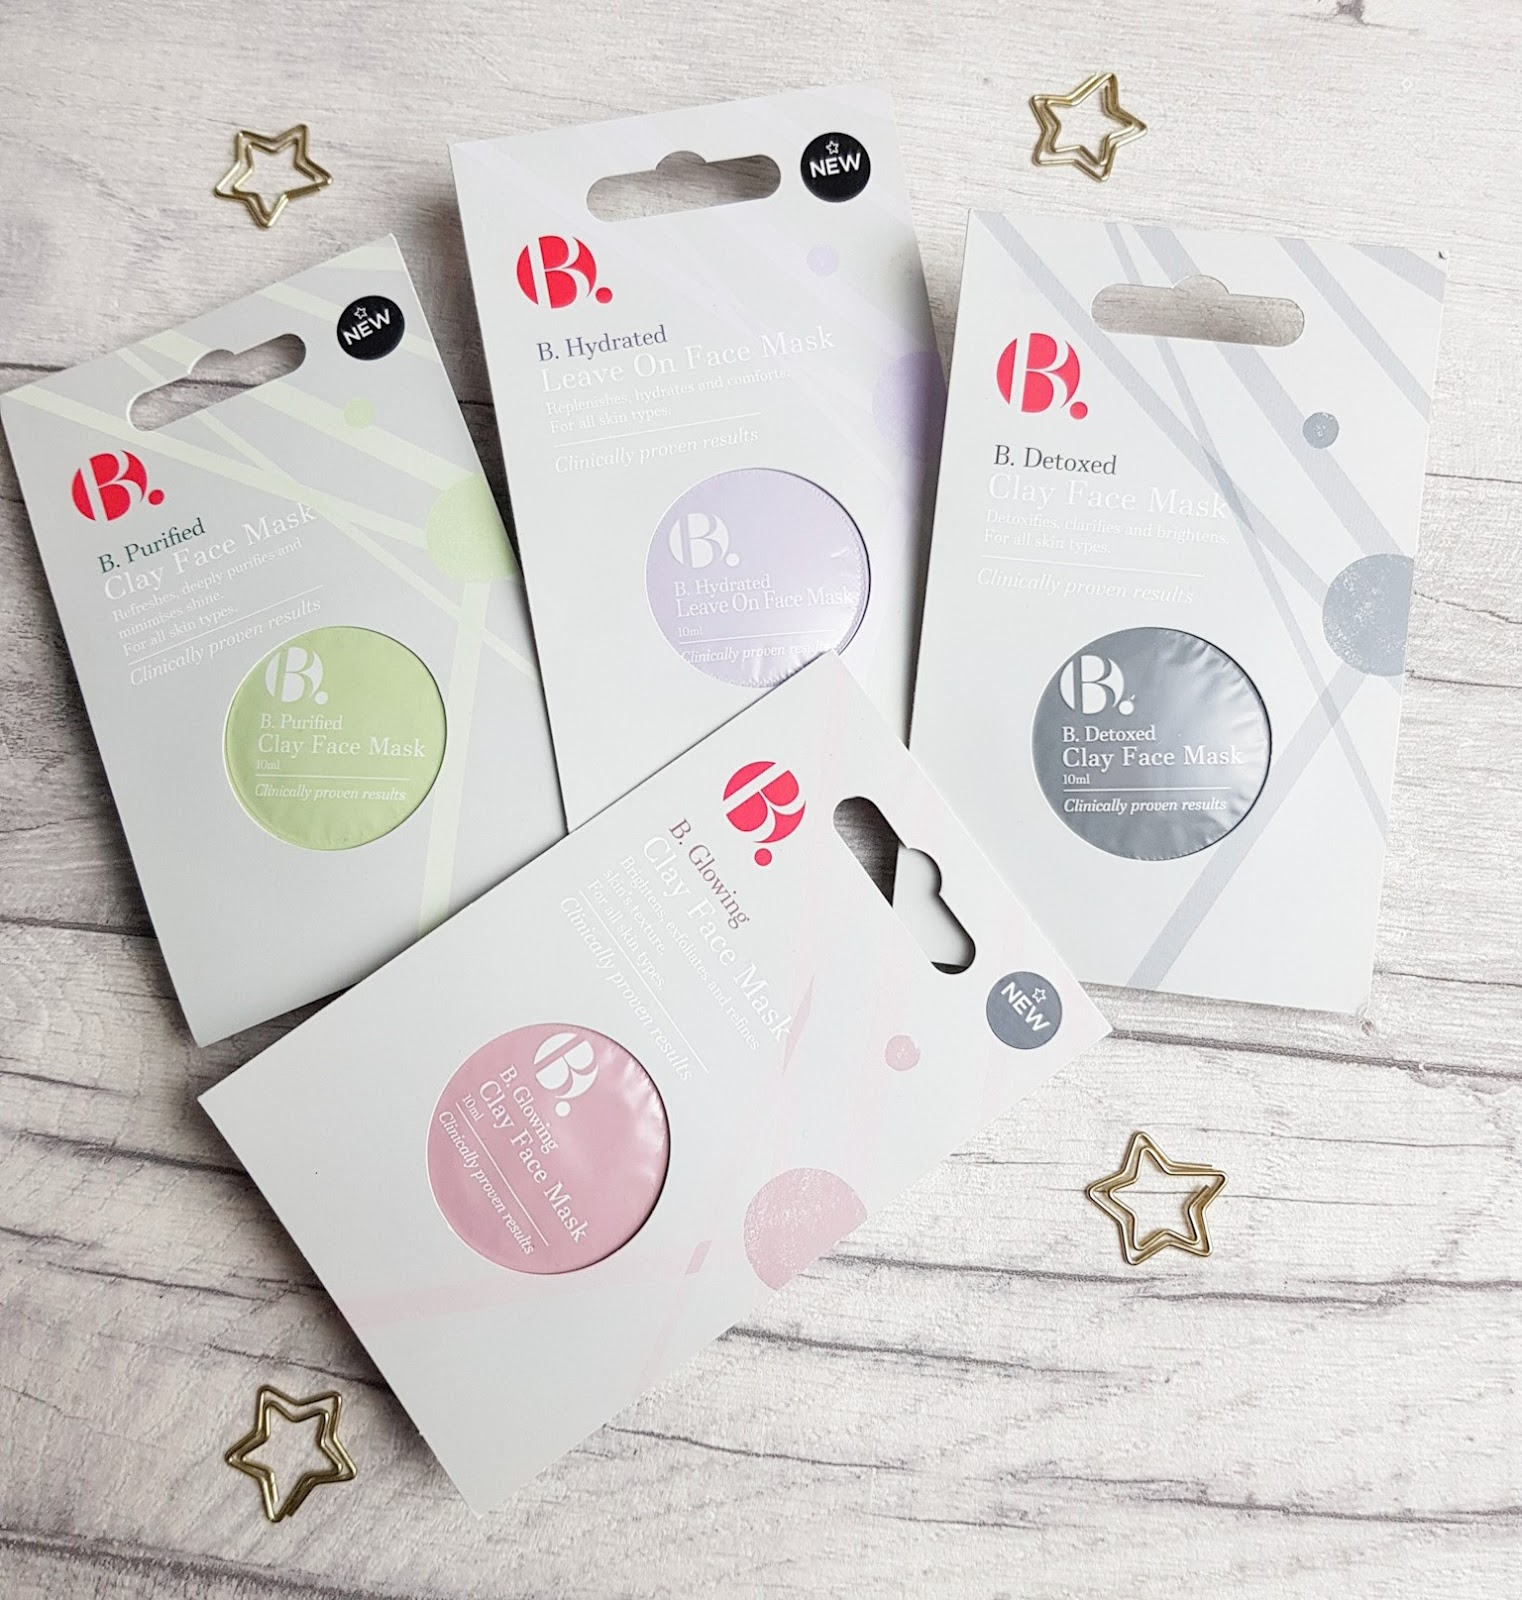 B. Skincare | Pod Face Masks Superdrug New release